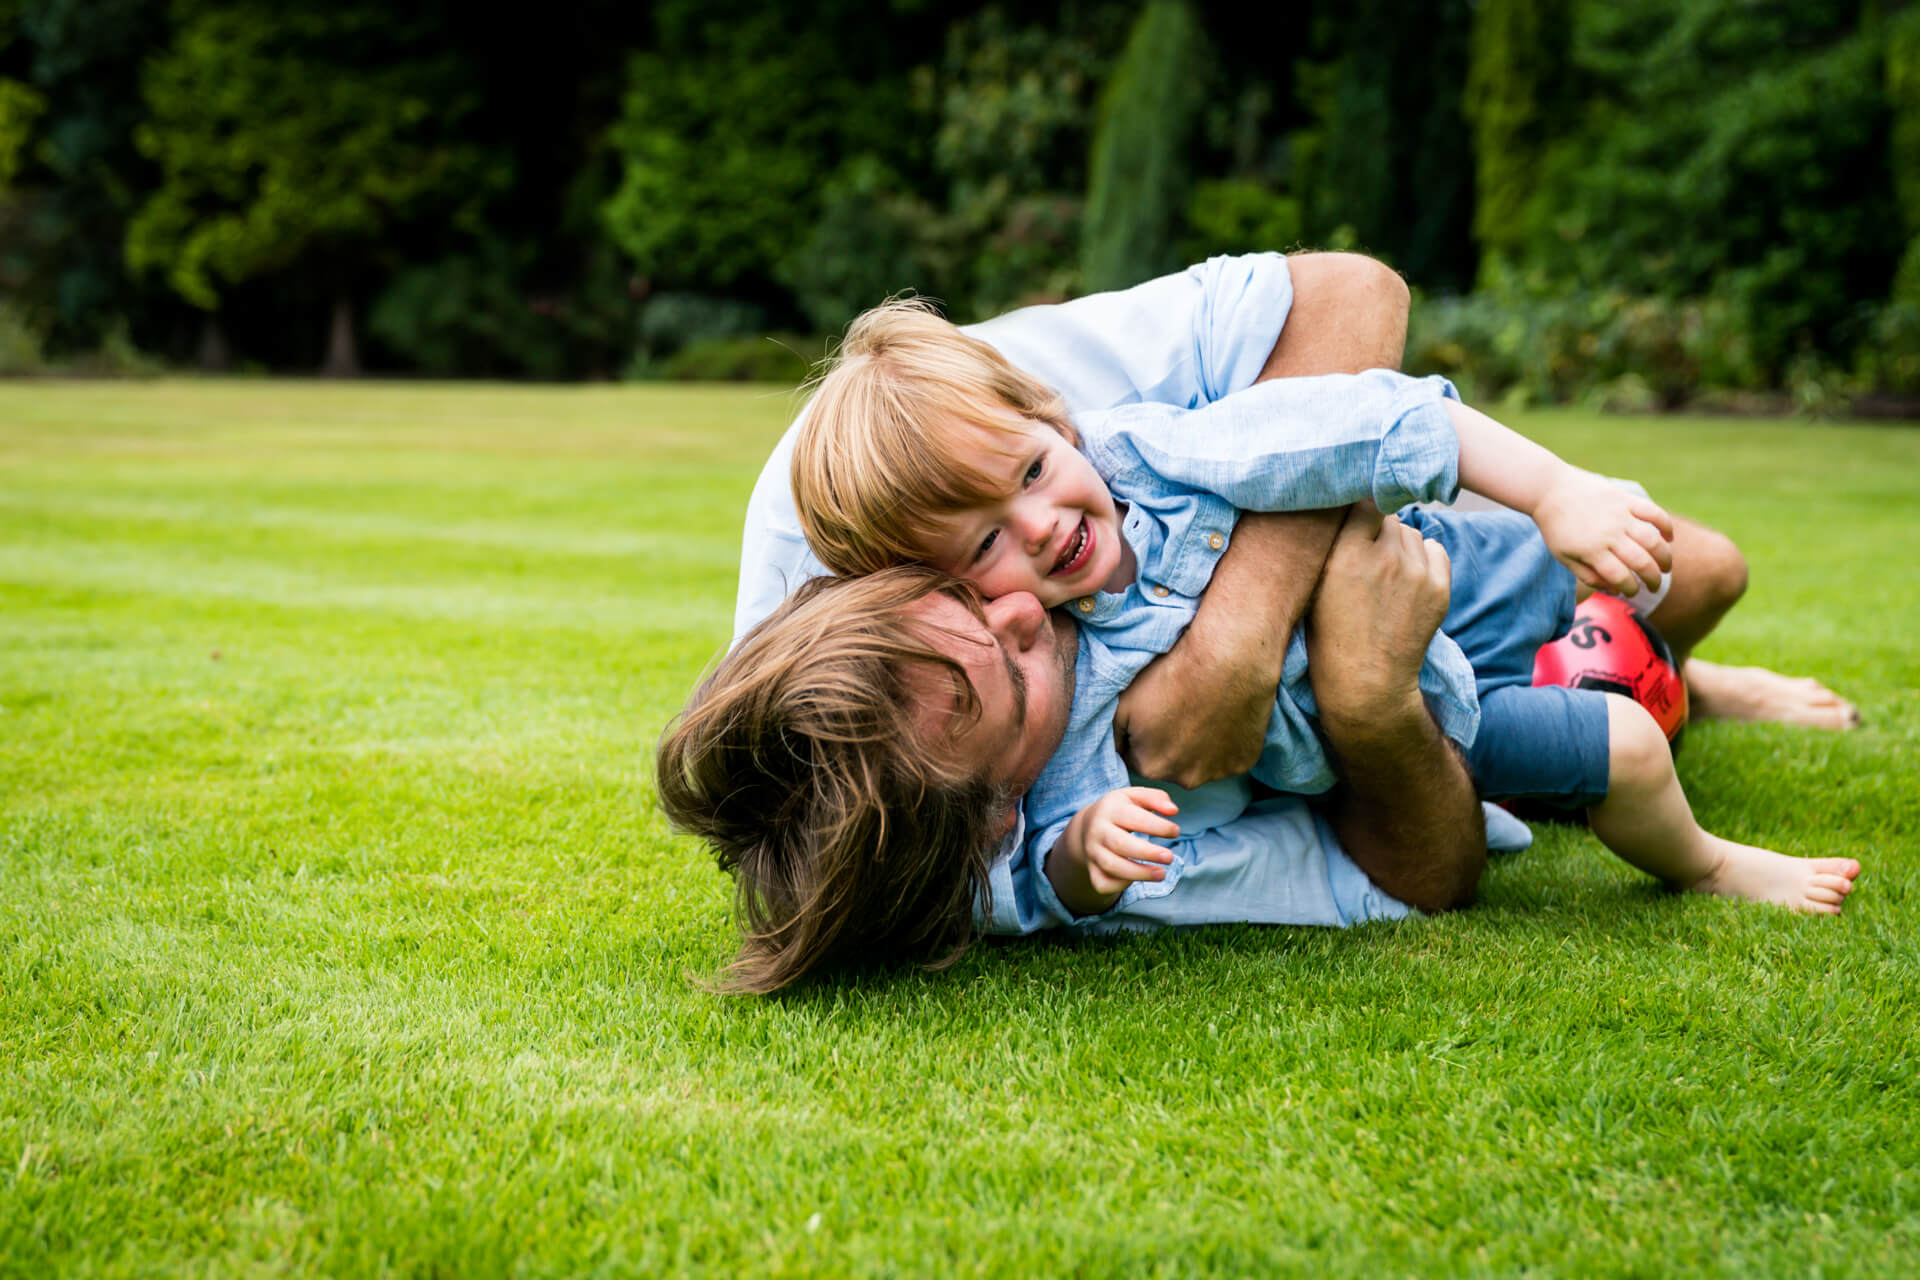 dad rolling on the grass with his son and laughing